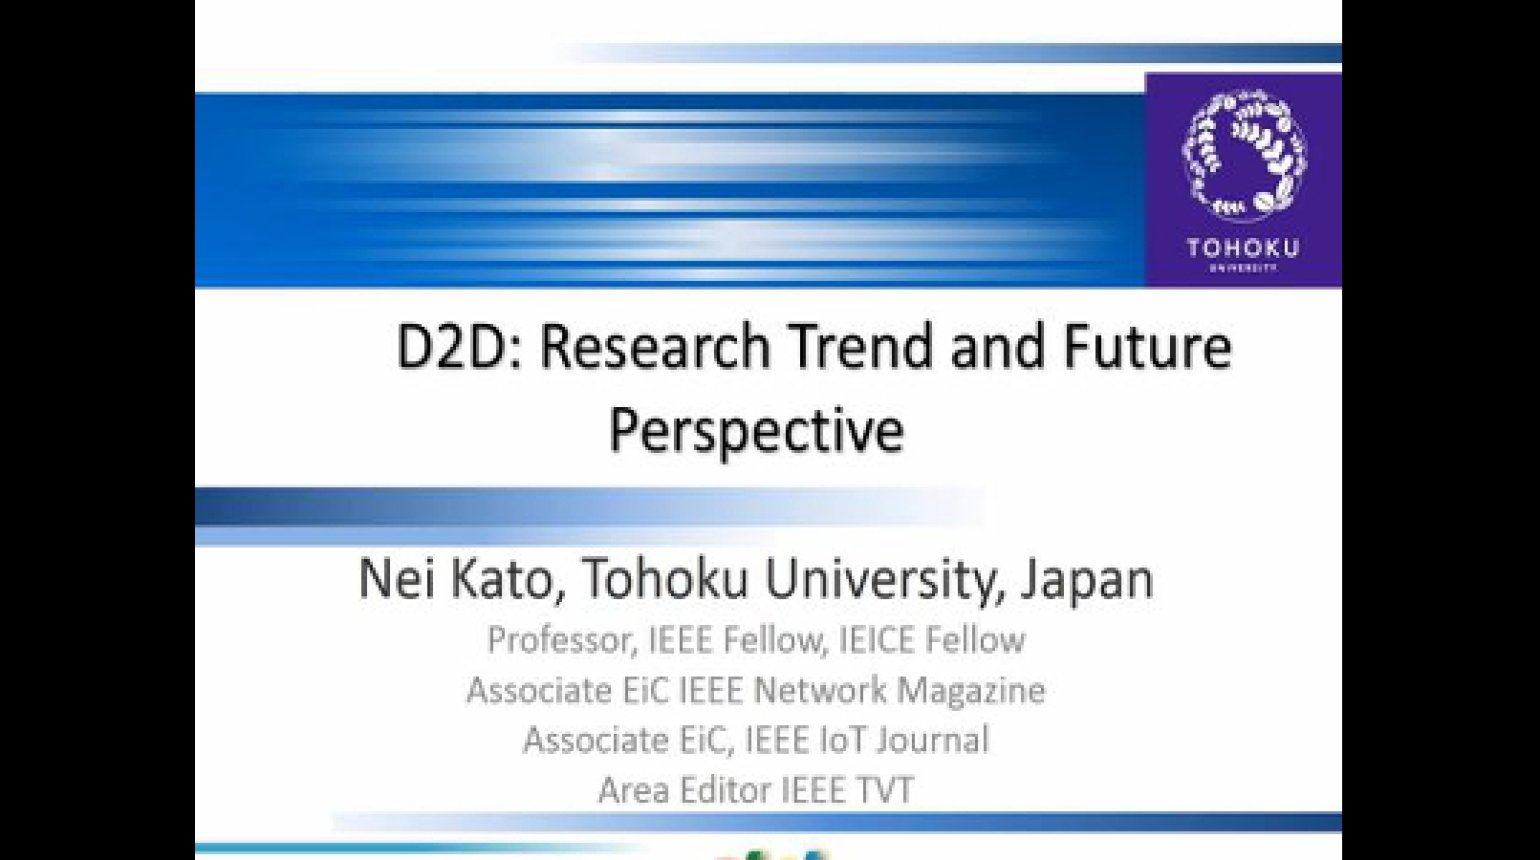 Video - D2D Research Trend and Future Perspective